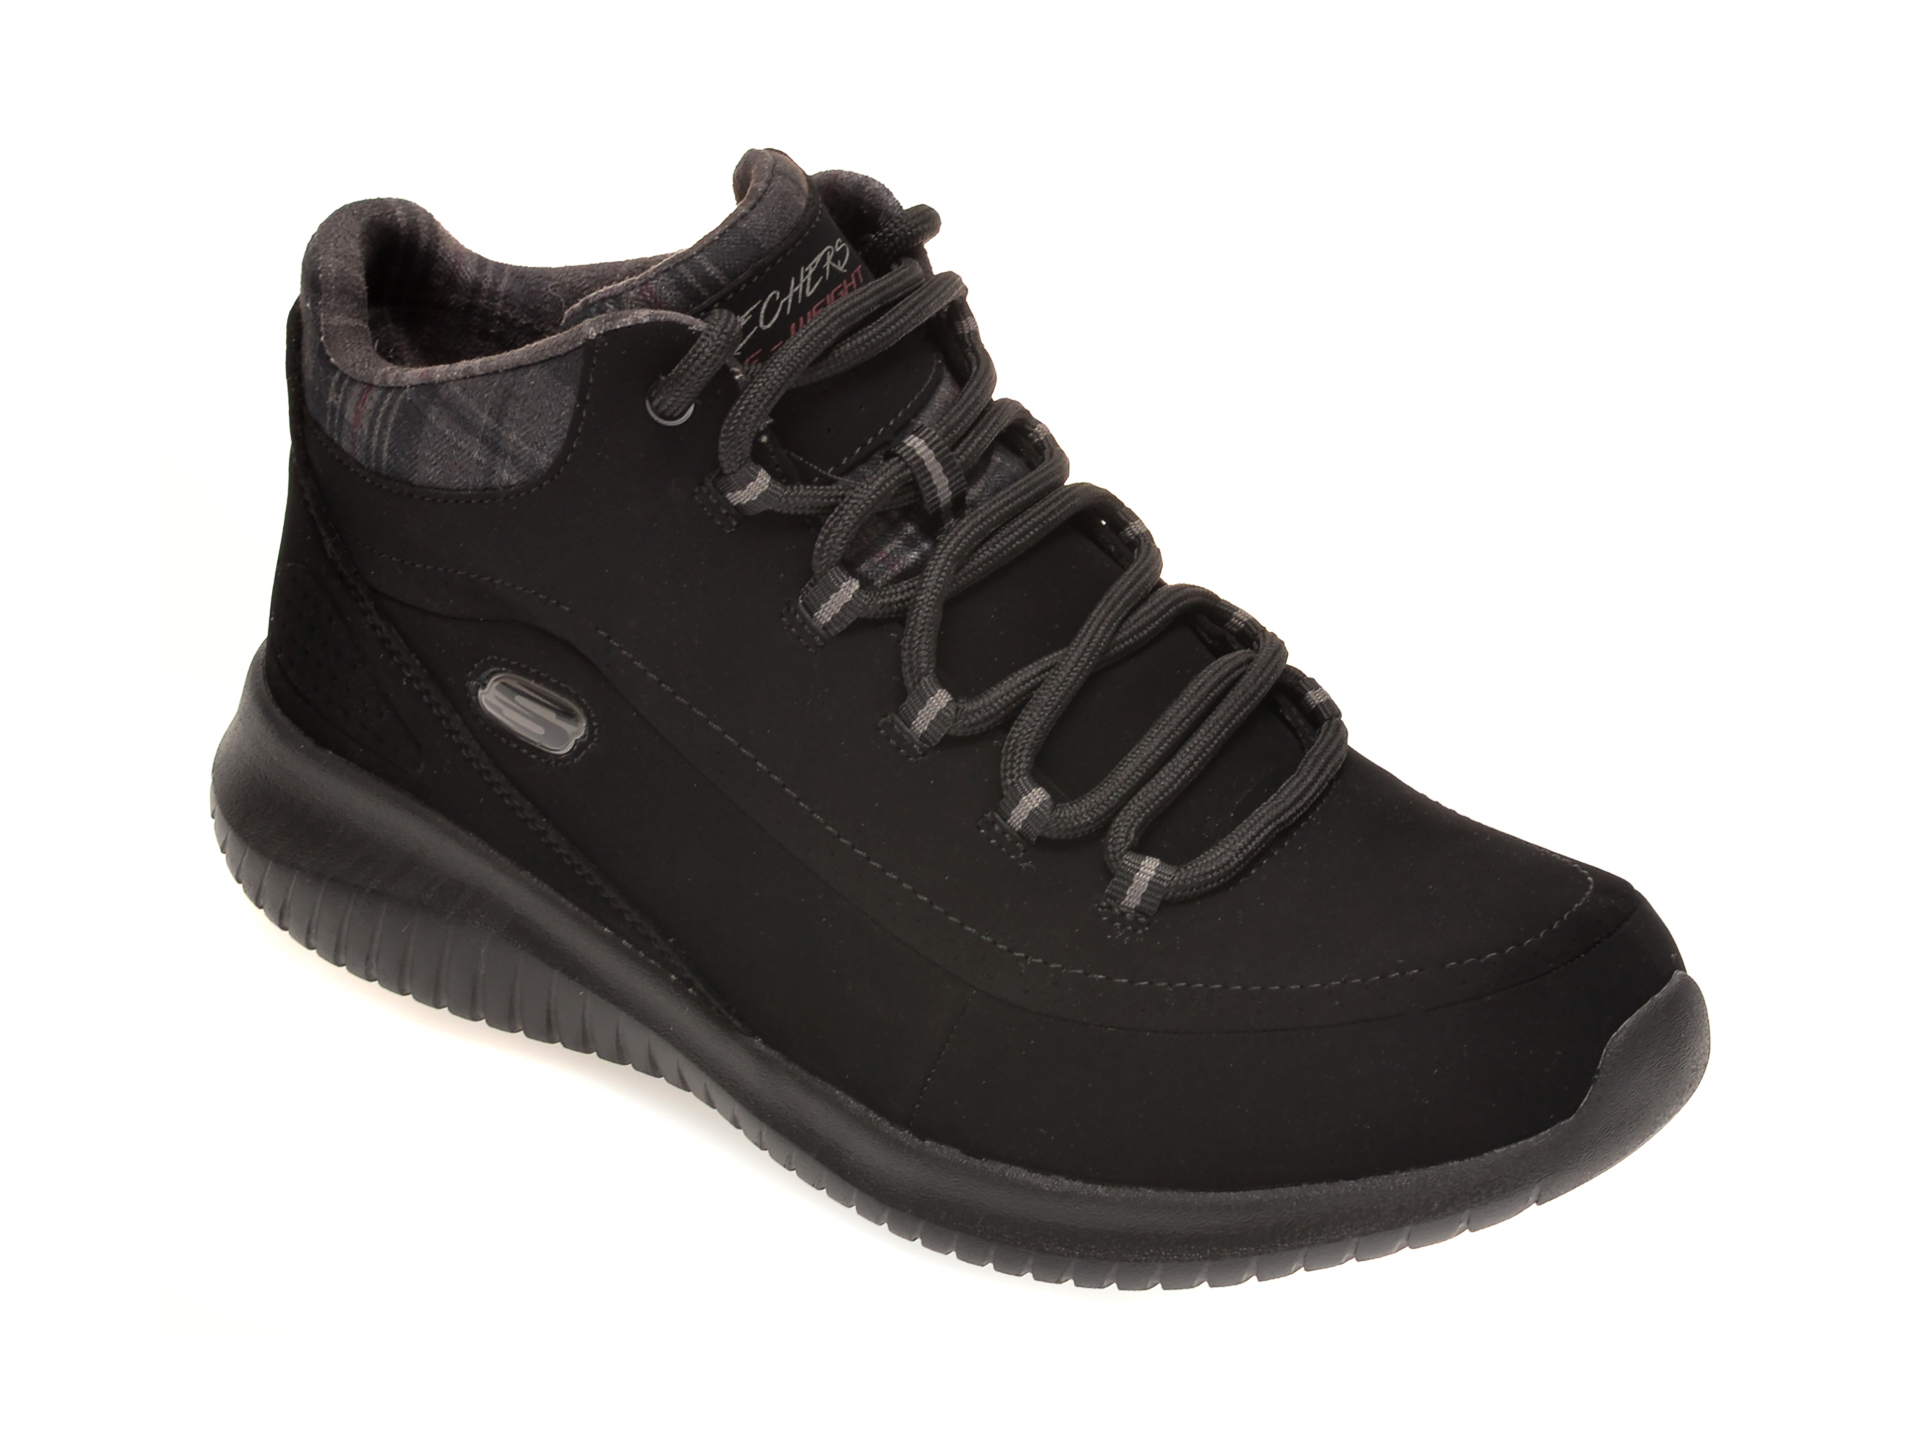 Pantofi SKECHERS negri, ULTRA FLEX JUST CHILL, din nabuc imagine